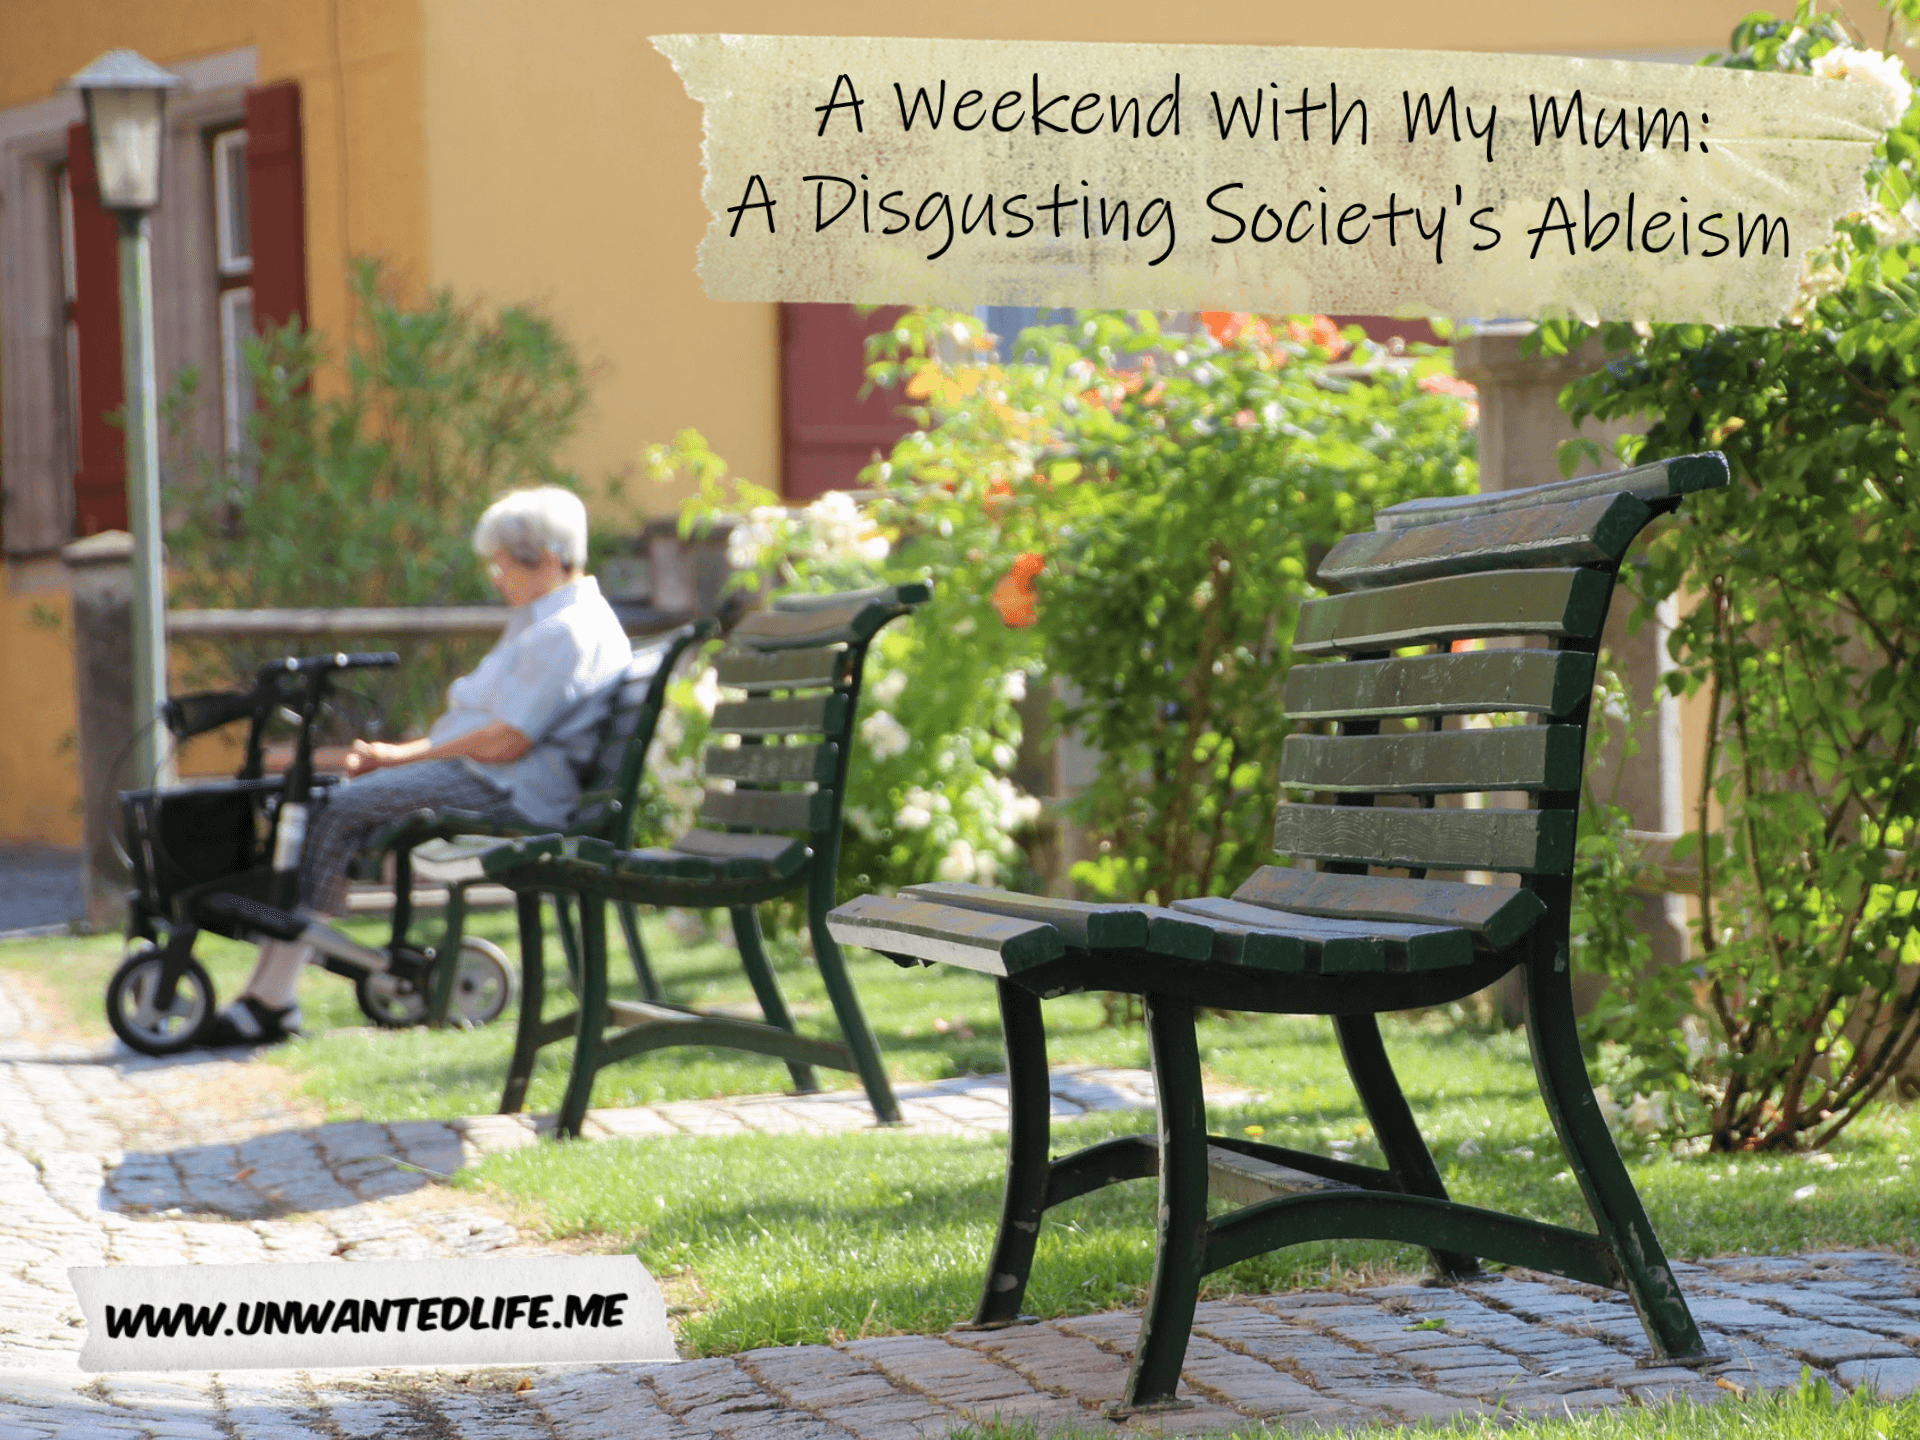 "An elderly woman with a rollator is sitting on a public bench outside with garden bushes behind her. In the top right corner of the image is the article's title ""A Weekend With My Mum A Disgusting Society's Ableism"""